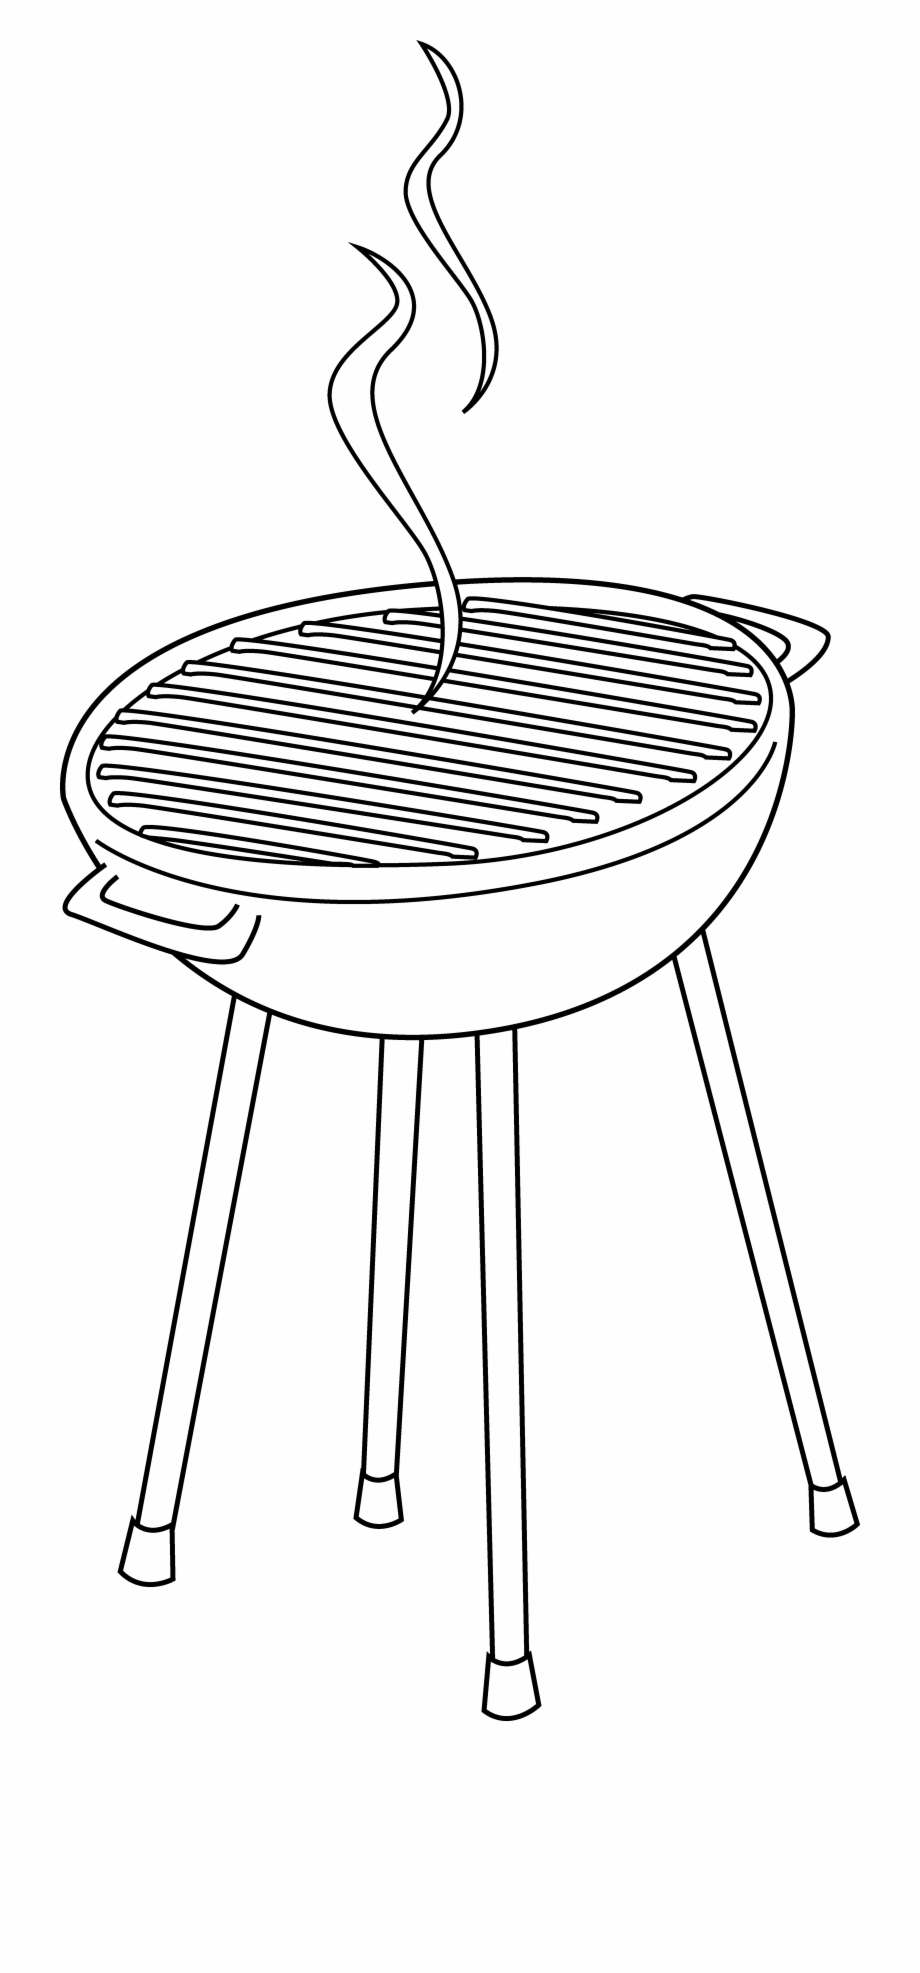 Bbq clipart free black and white jpg Barbeque Grill Line Art - Grill Clipart Black And White Free PNG ... jpg